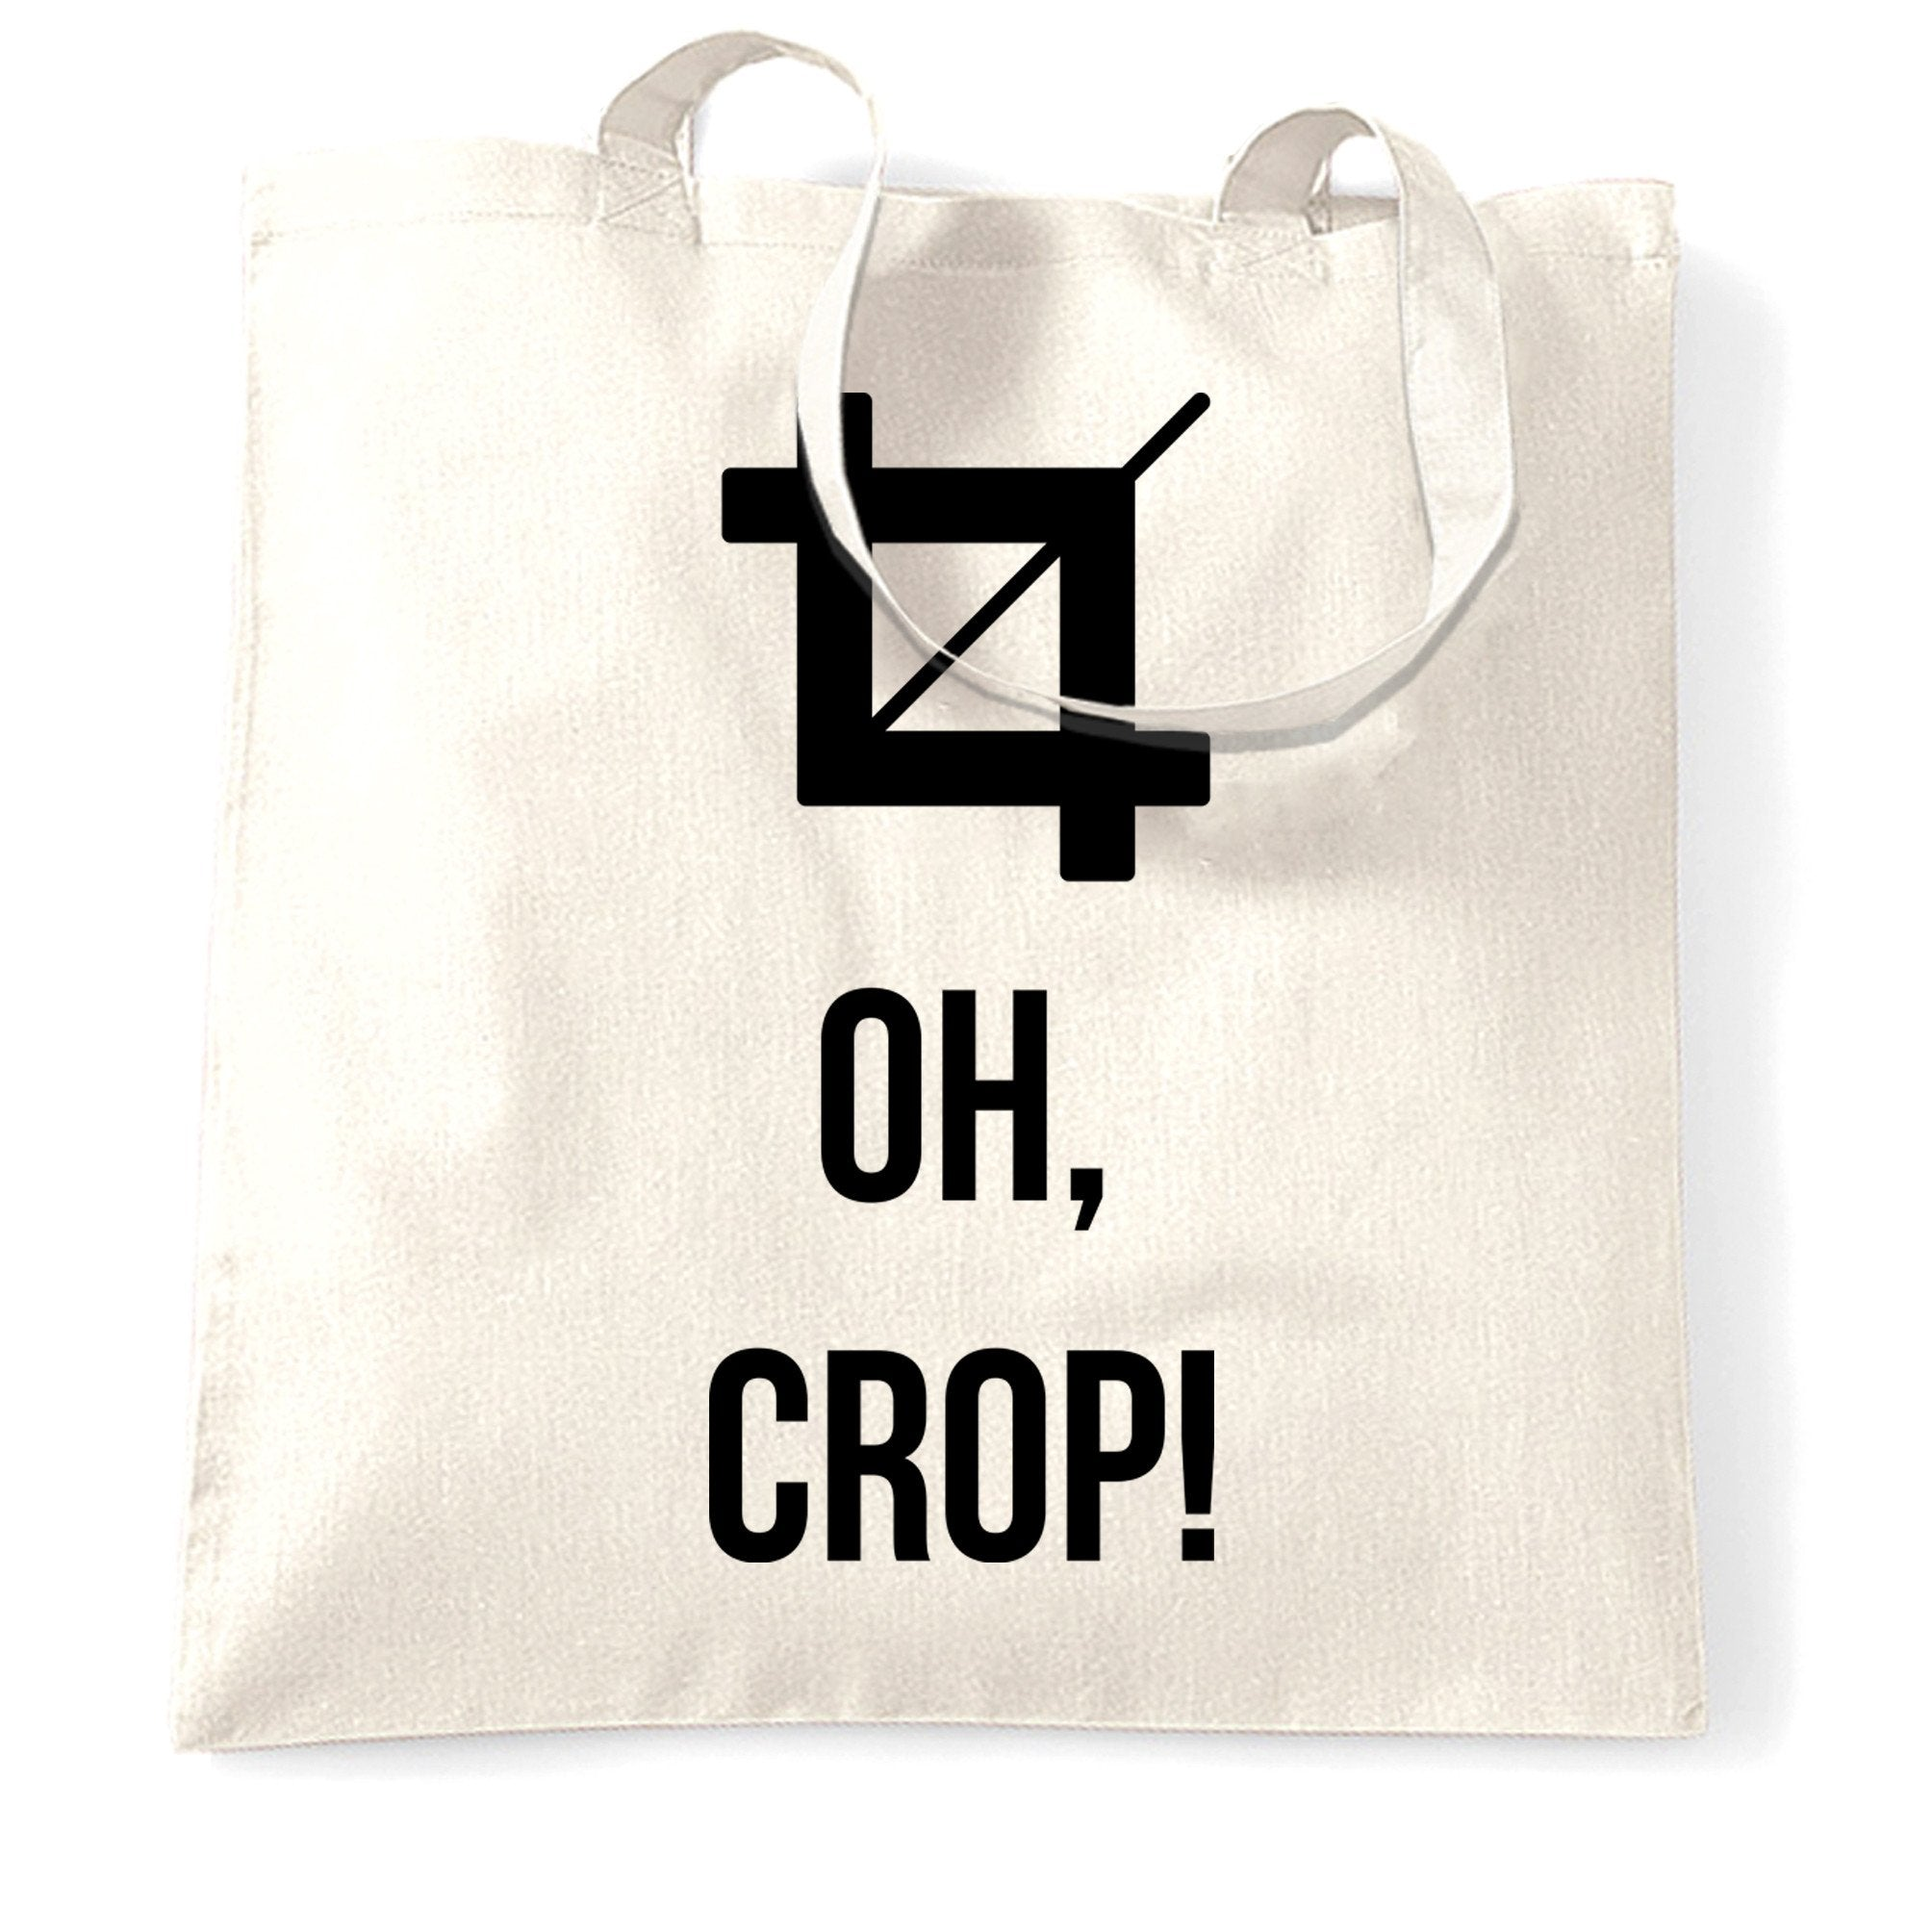 Novelty Tote Bag Oh Crop! Graphic Design Joke